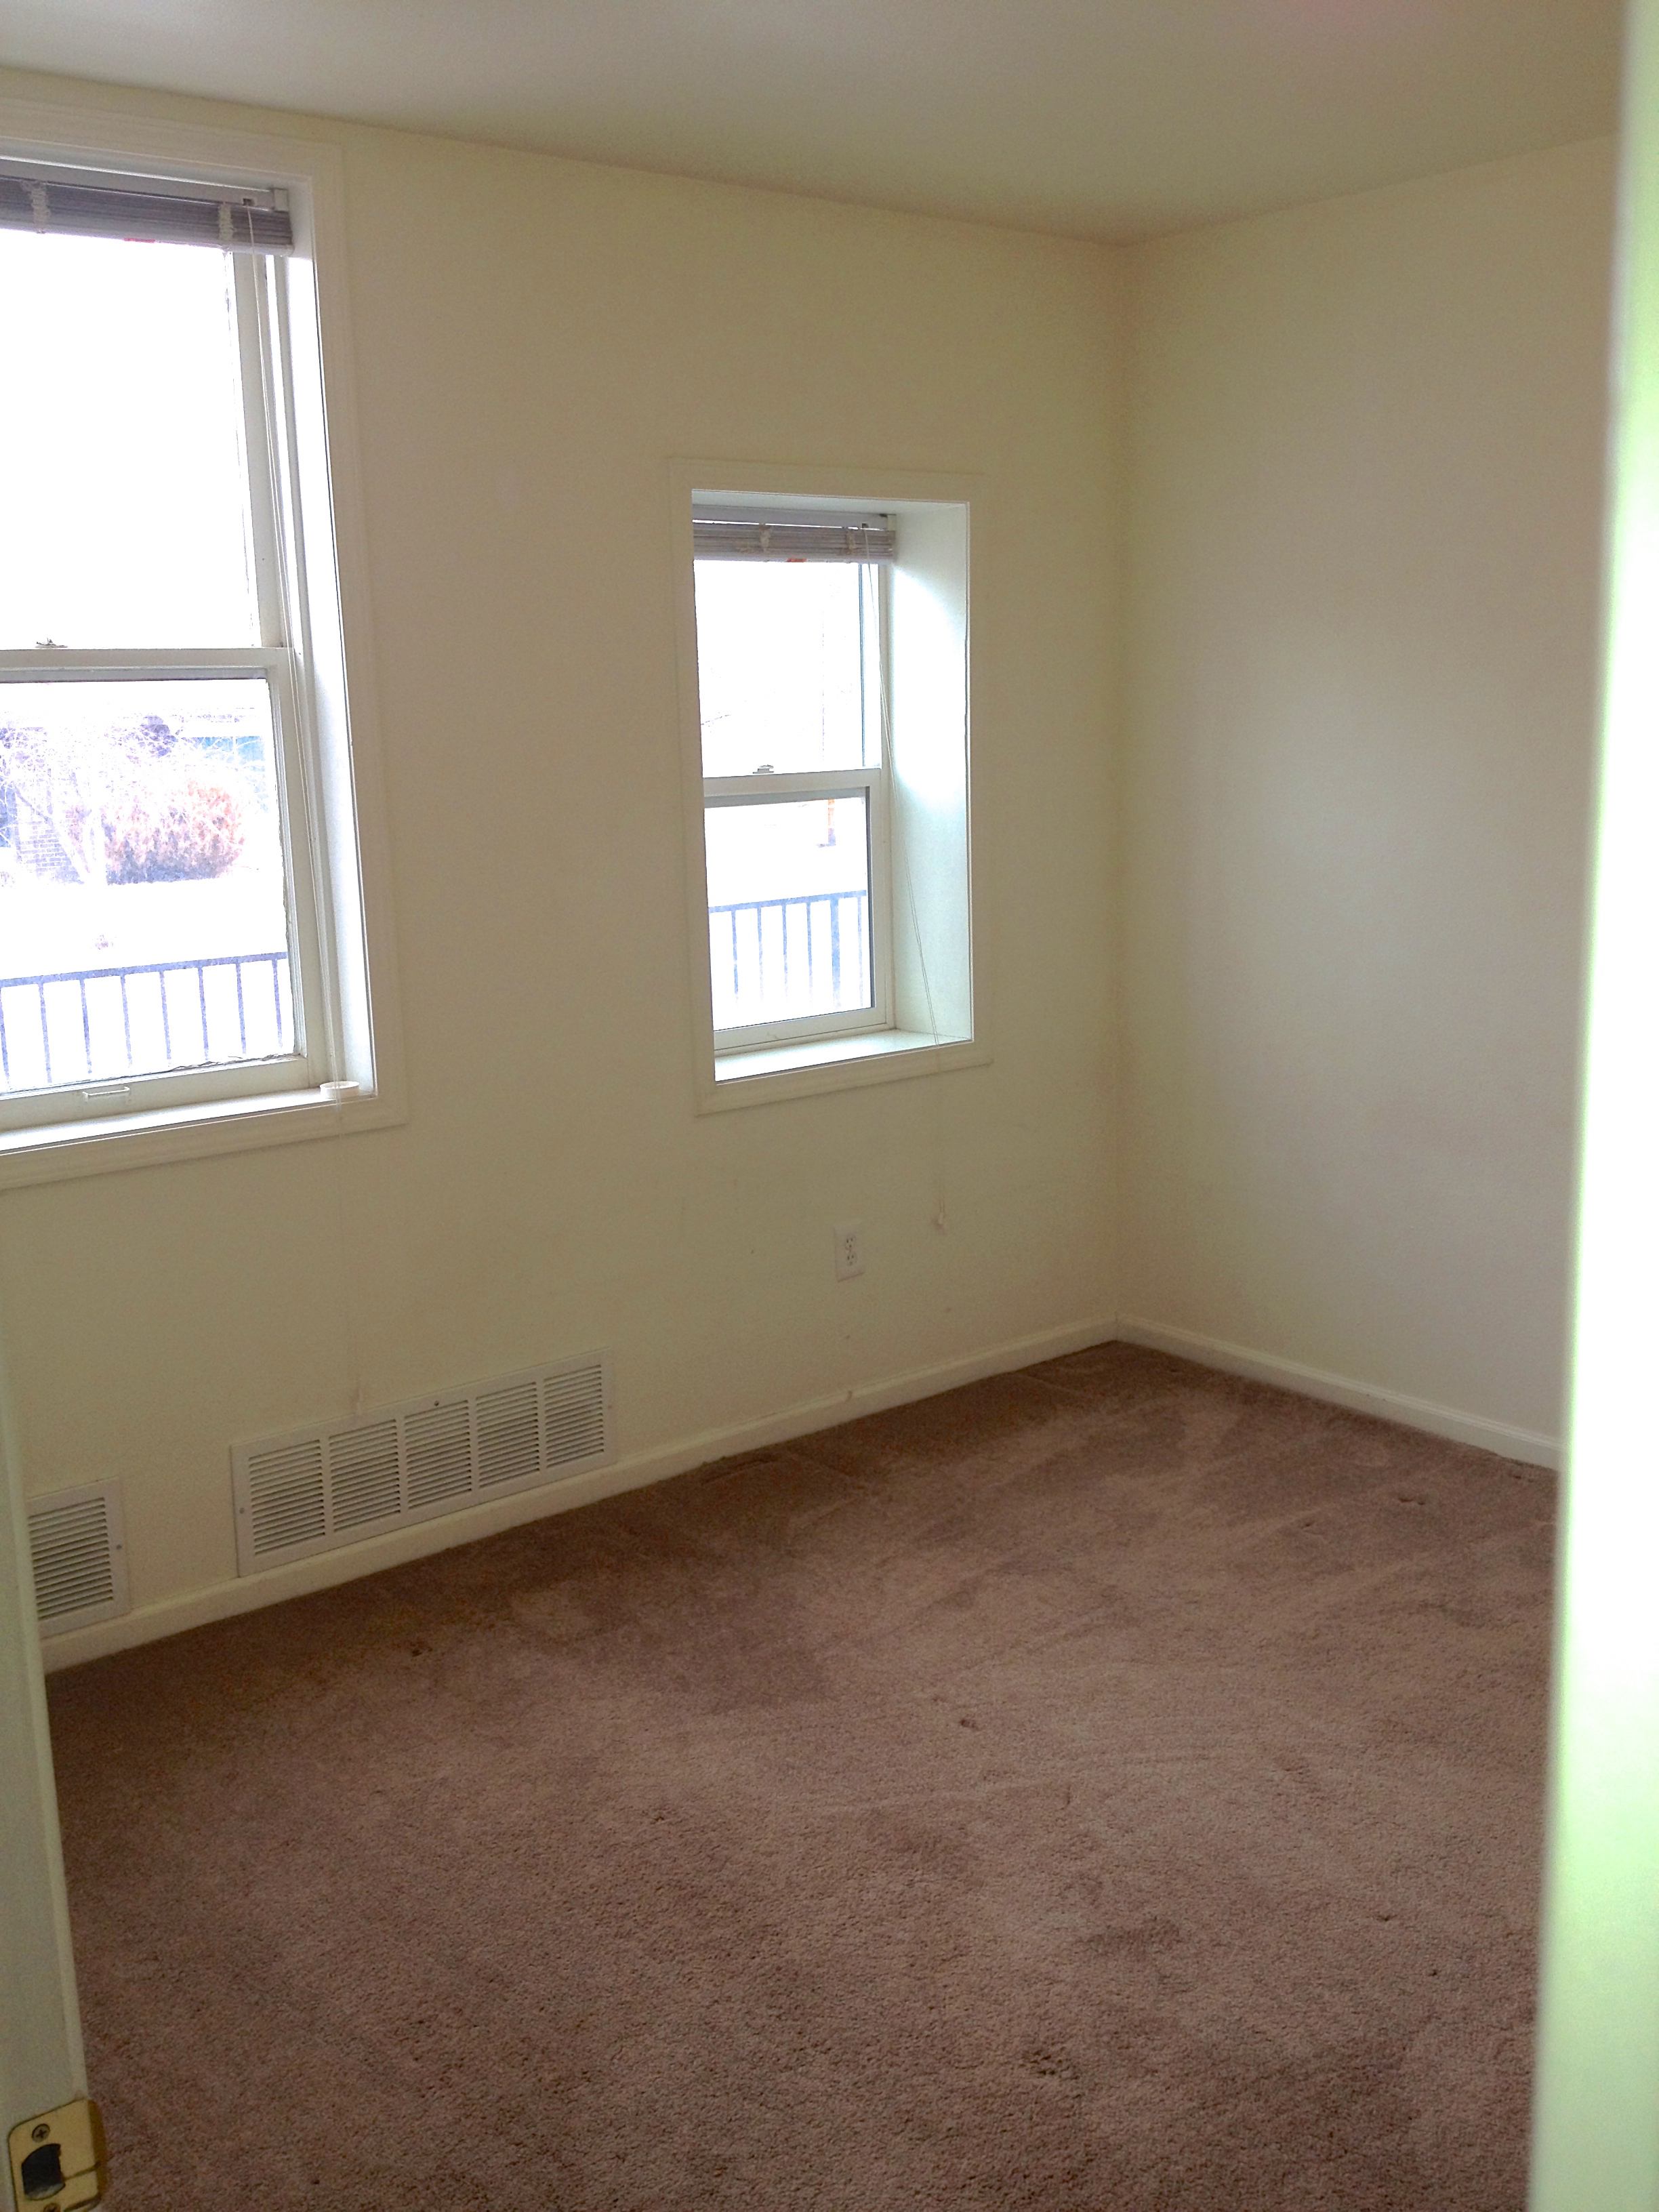 1 bedroom 1 bathroom apartment available soon 309 casper rental central for Apartment 1 bedroom 1 bathroom